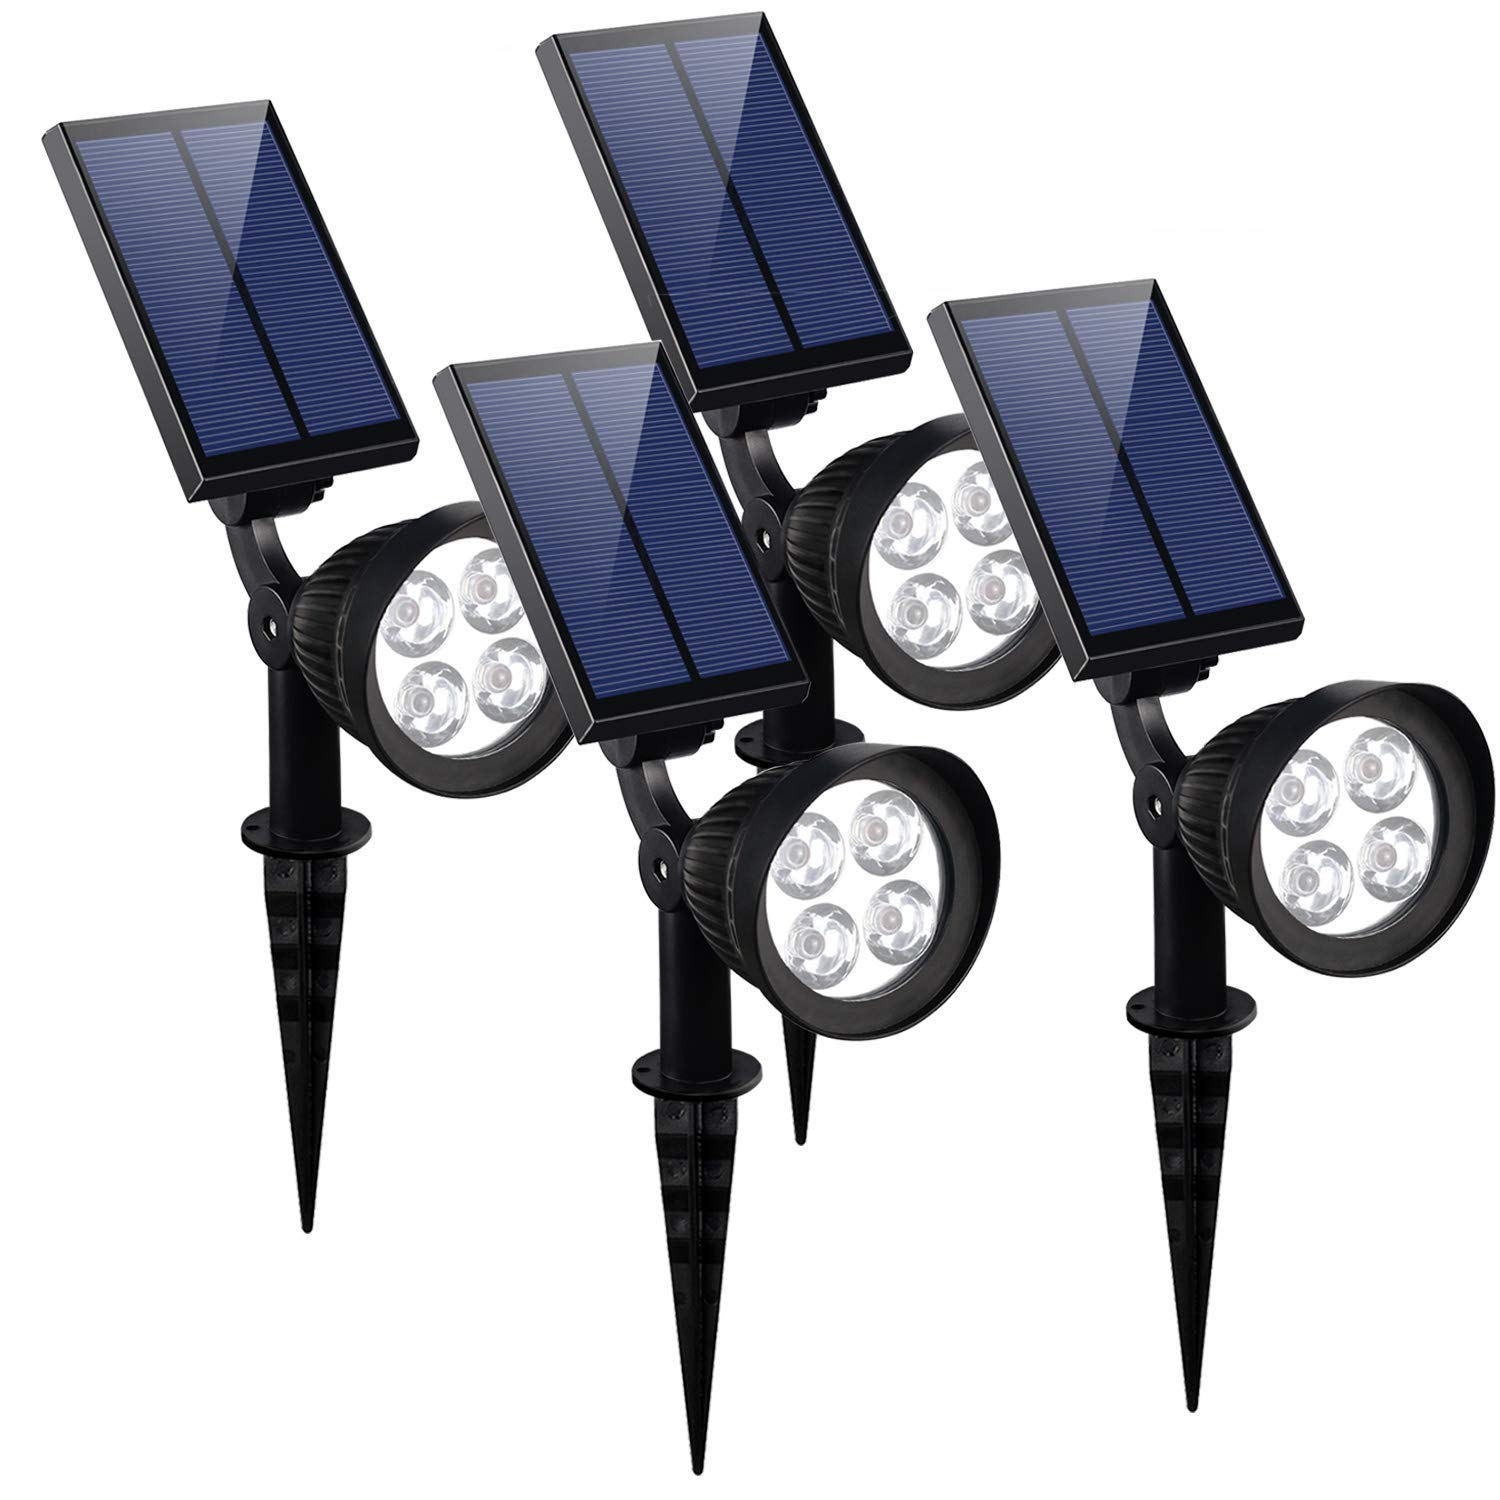 KOMAES Solar Spotlights Outdoor, Waterproof Solar Security Landscape Lights, Adjustable Solar Garden Light with Auto On/Off for Yard Driveway Pathway Pool Patior Garden, Walkways (4 Packs) by KOMAES